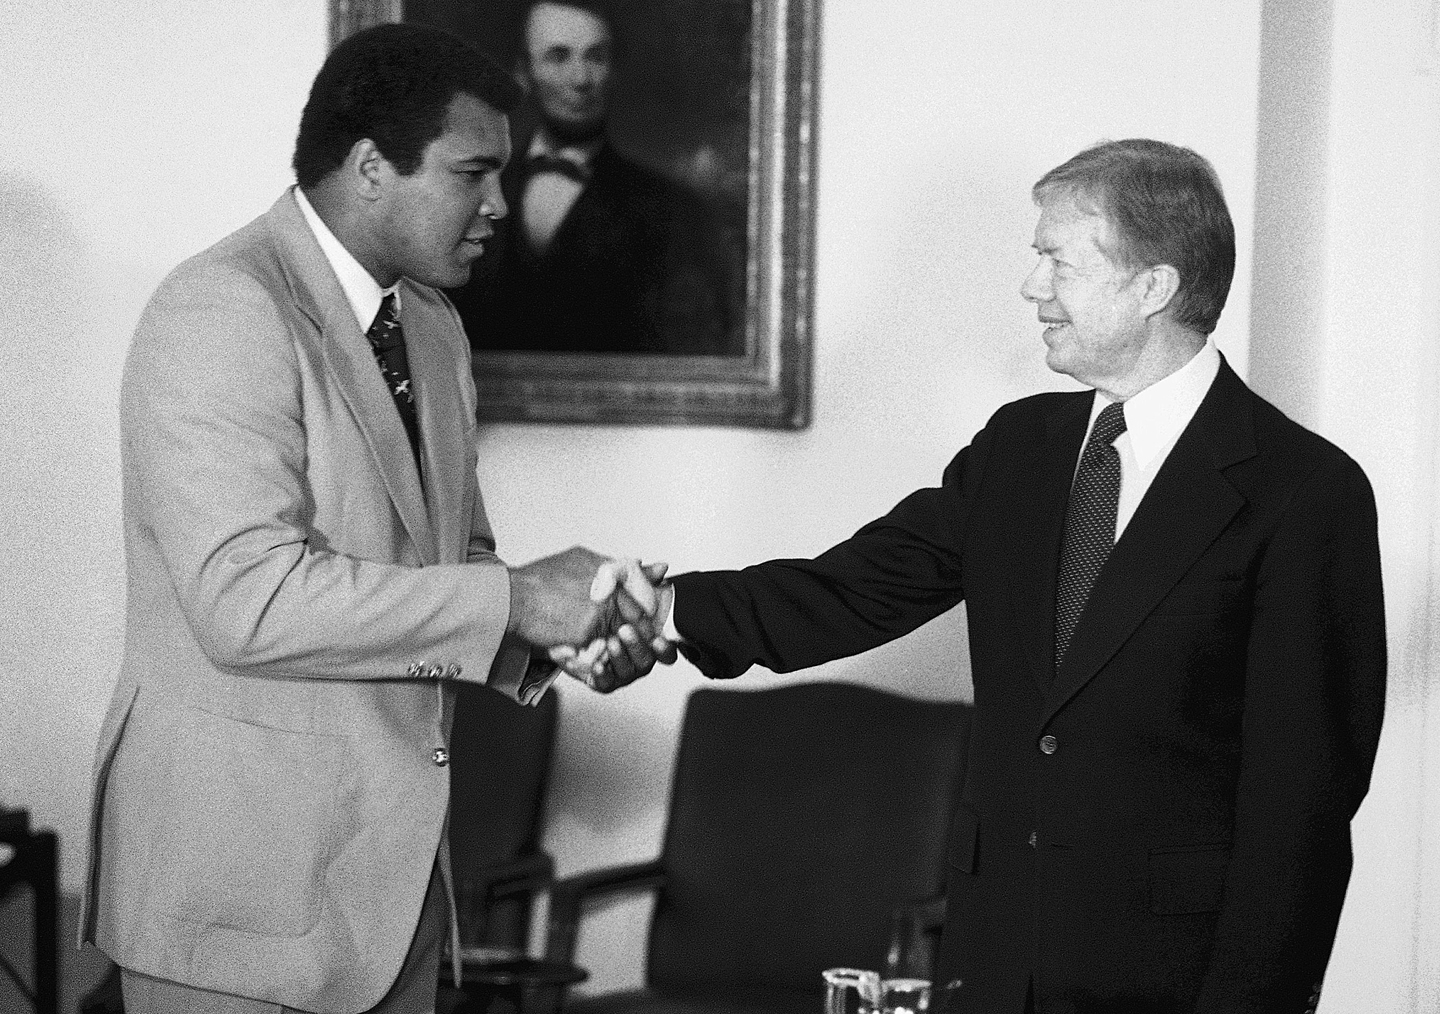 Retired heavyweight boxer Muhammad Ali, left, gives President Carter a big handshake in the Cabinet Room at the White House in Washington on Monday, Feb. 11, 1980 prior to reporting to Carter on his recent trip to Africa.